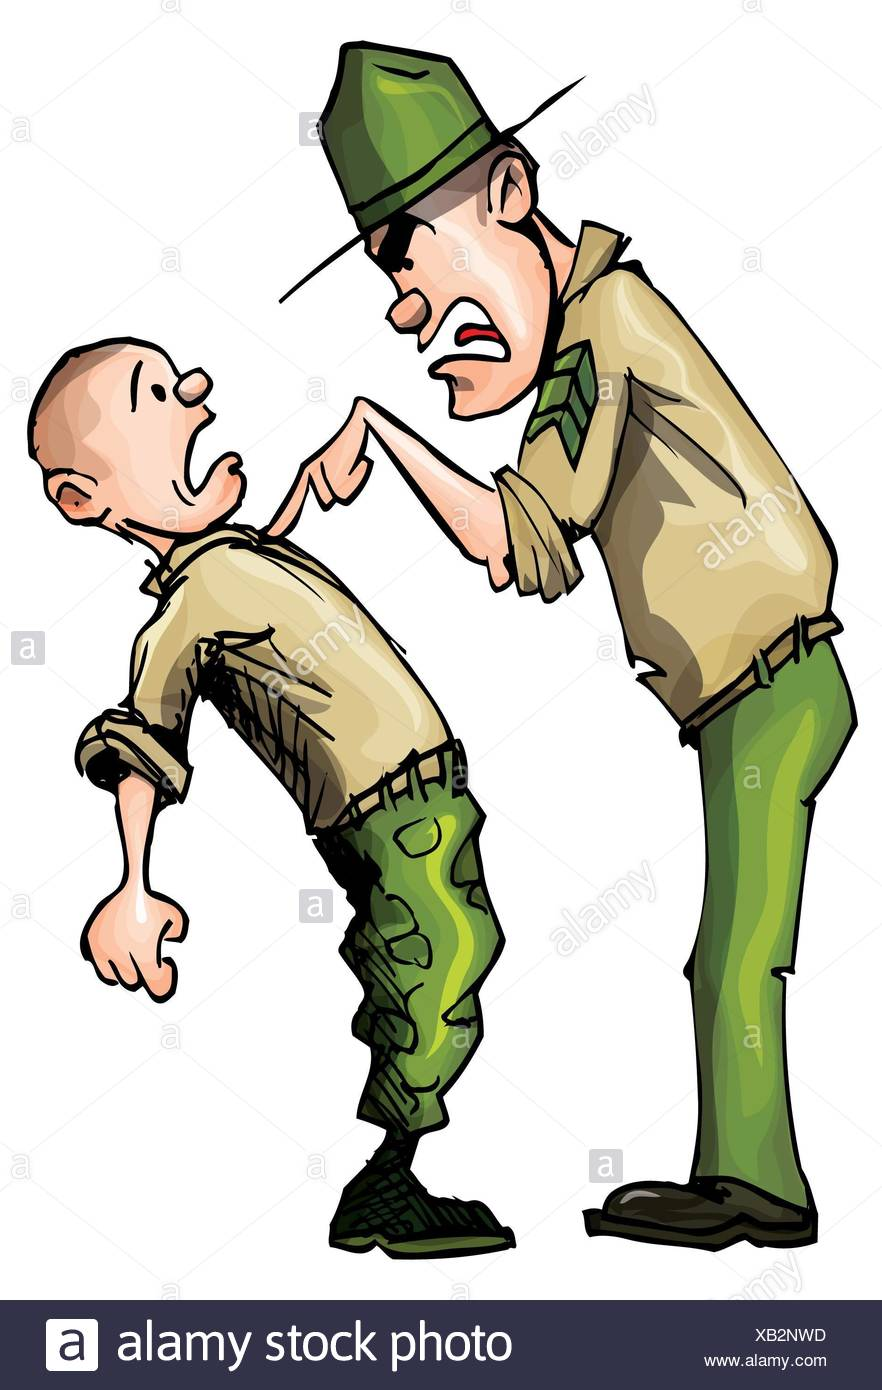 Angry Cartoon Drill Sergeant Screaming In Anger Stock Photo Alamy